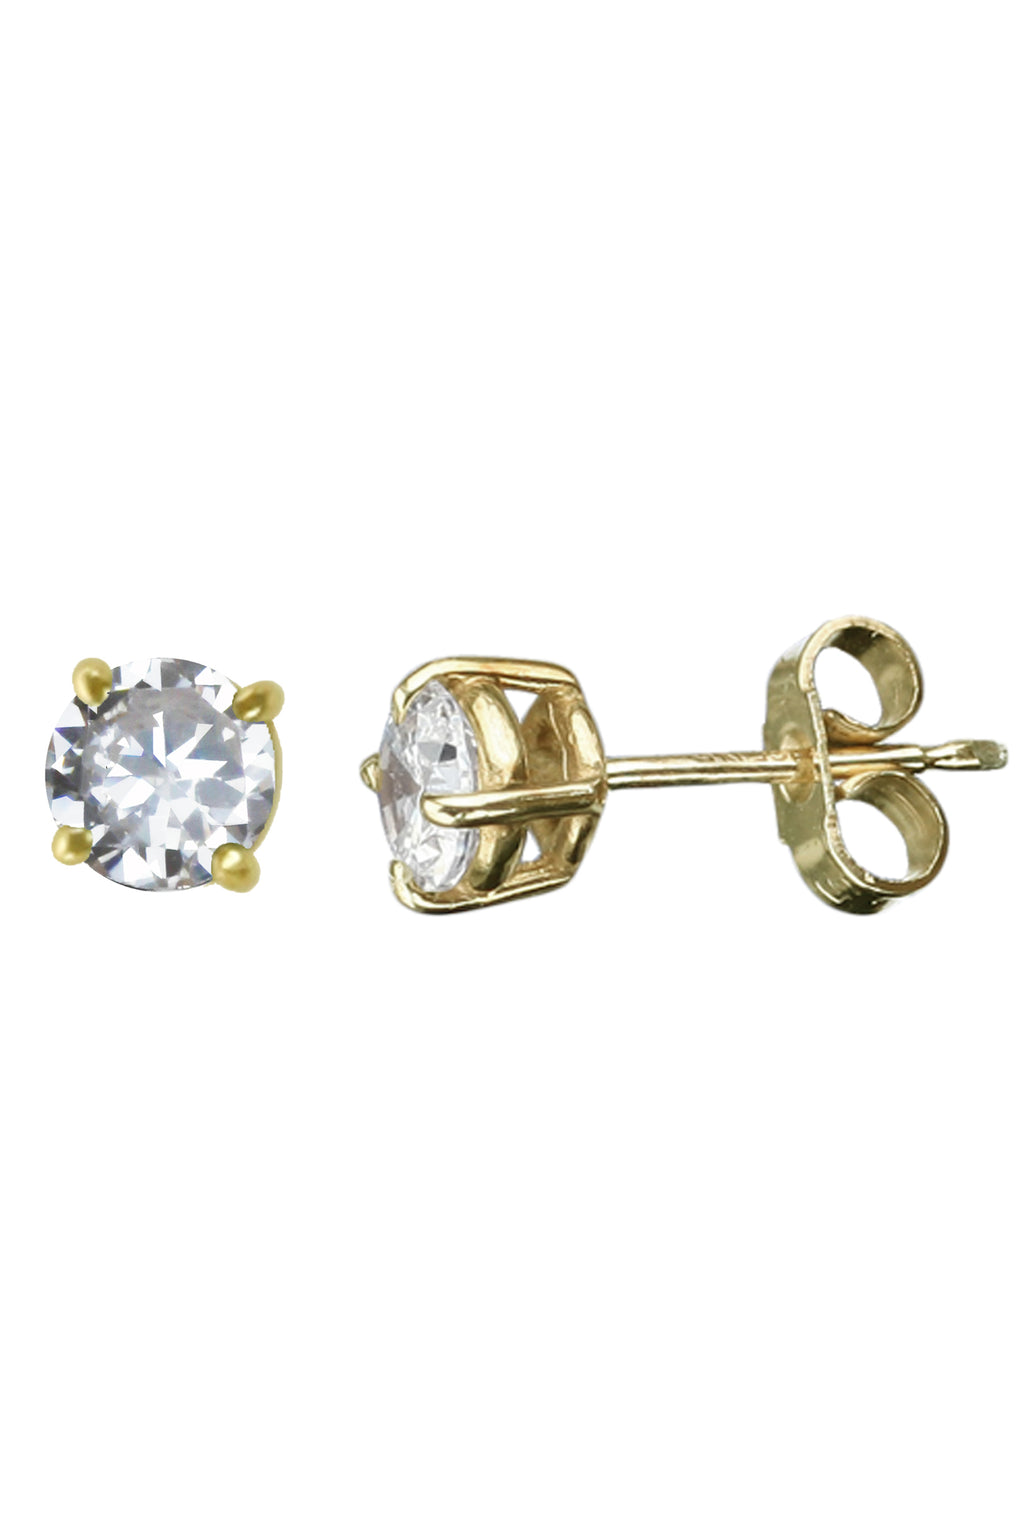 Cubic Zirconia Gold stud earrings